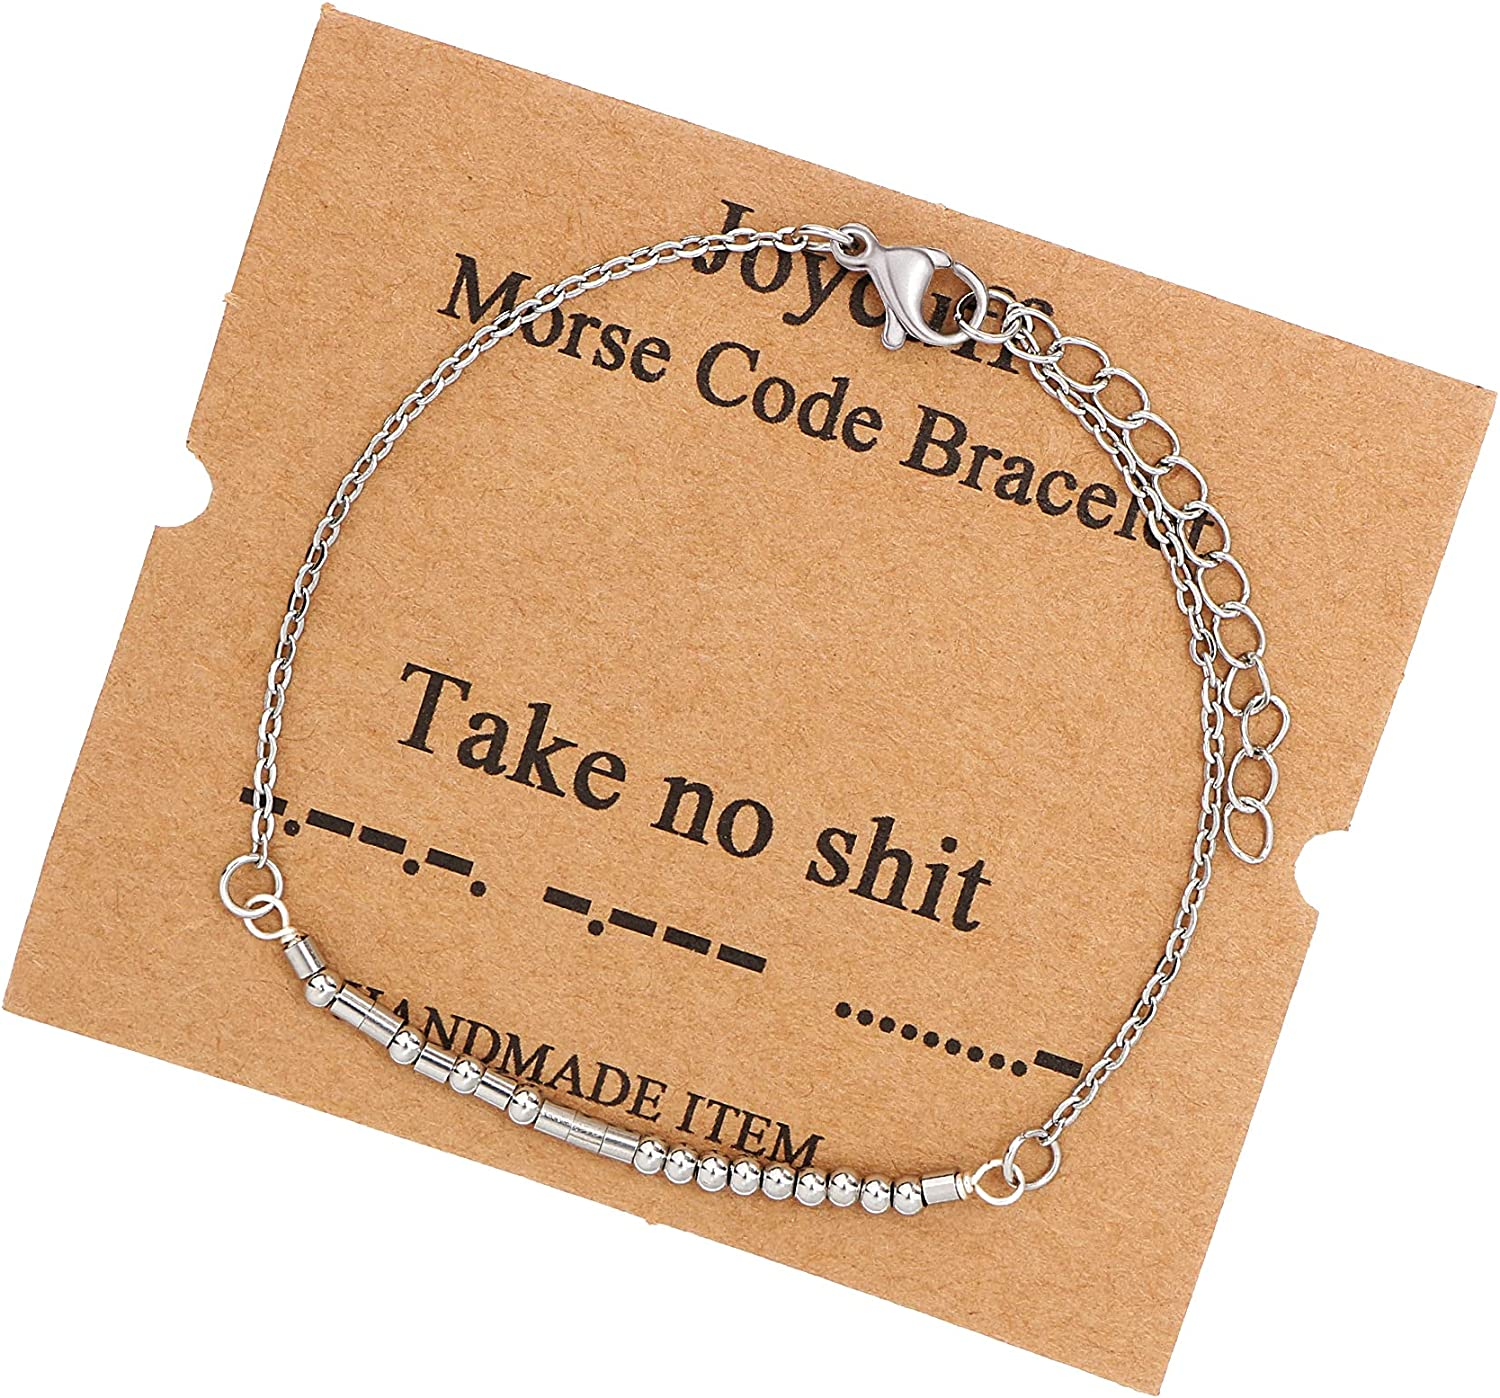 JoycuFF Morse Code Bracelets for Women Inspirational Jewelry Gifts for Friend Mom Sister Daughter Aunt Grandma Coworker Motivational Chain Bracelet for Her Birthday Mother's Day Christmas